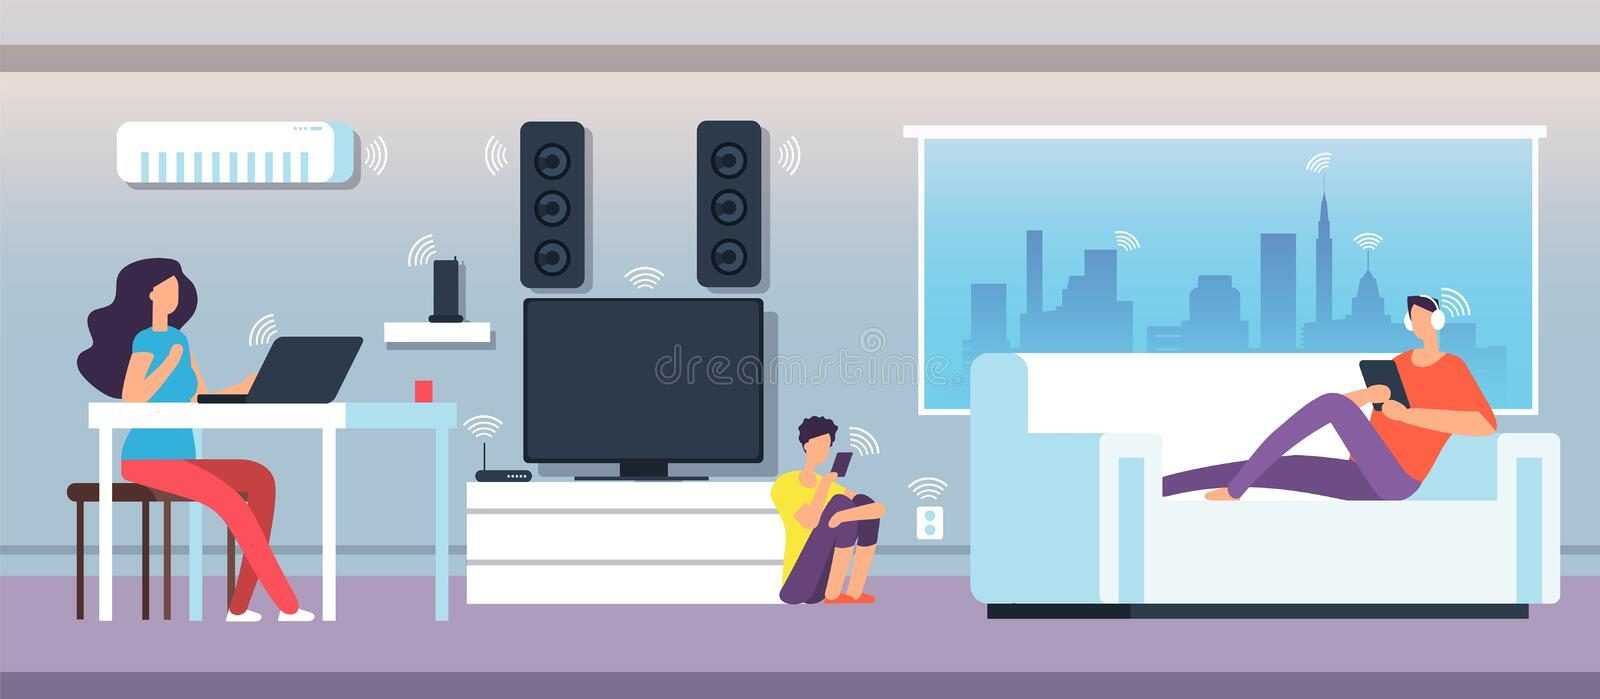 Electromagnetic field in home. People under EMF waves from appliances and devices. Electromagnetic pollution vector royalty free illustration